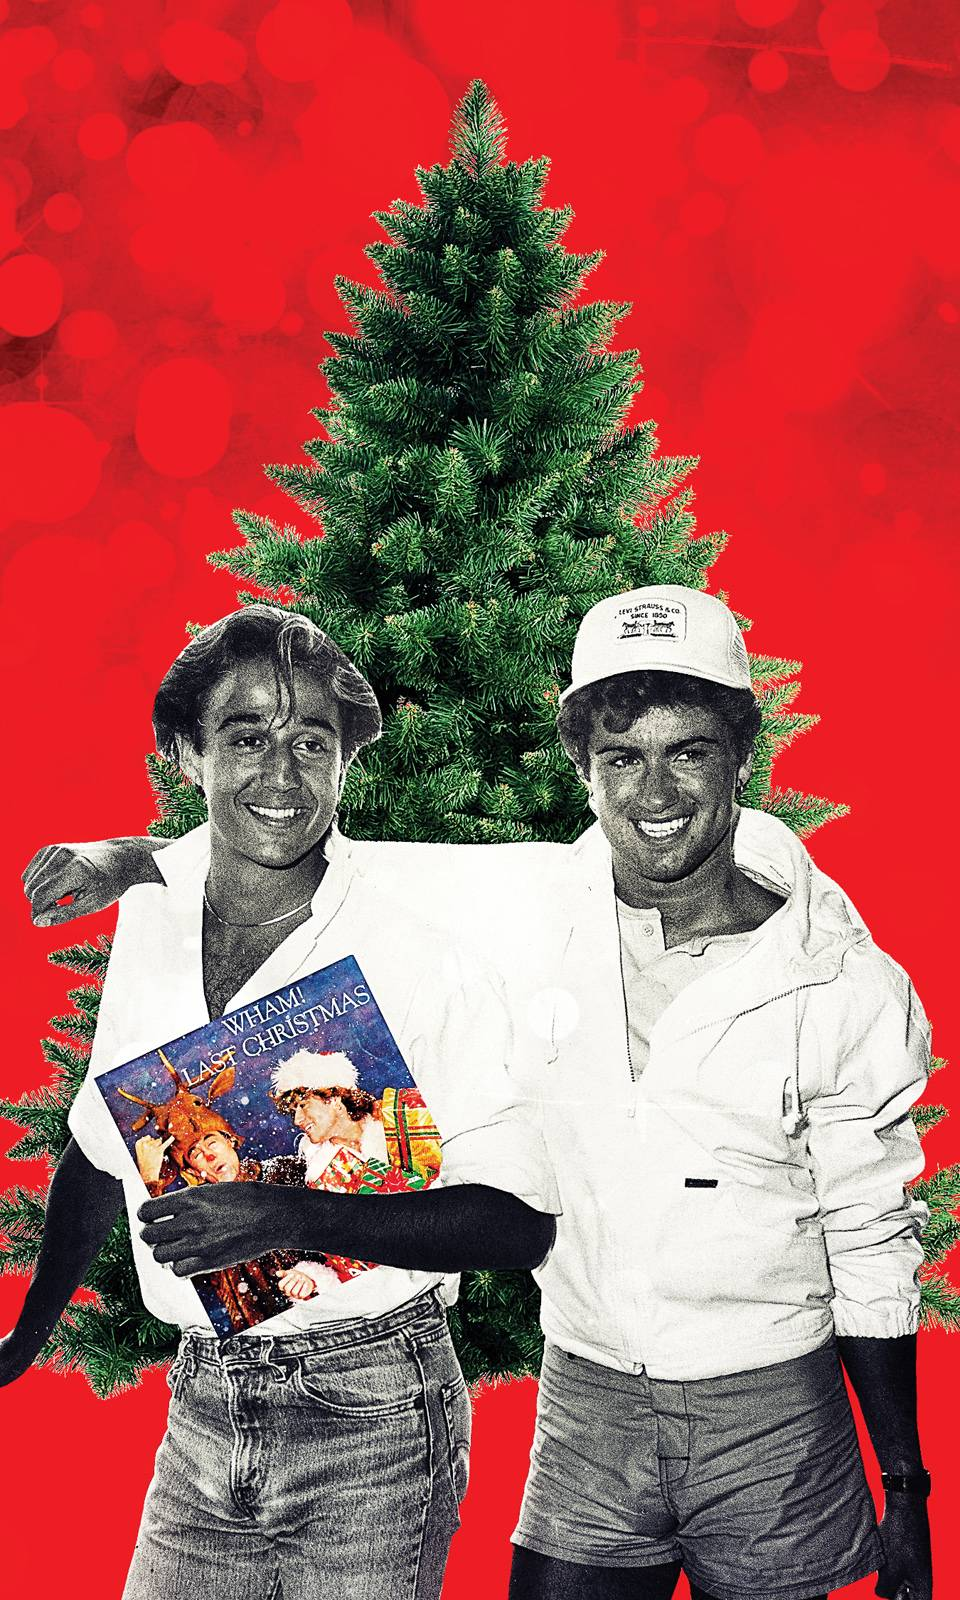 Wham Christmas.From De La Soul To Wham Make This Christmas All About